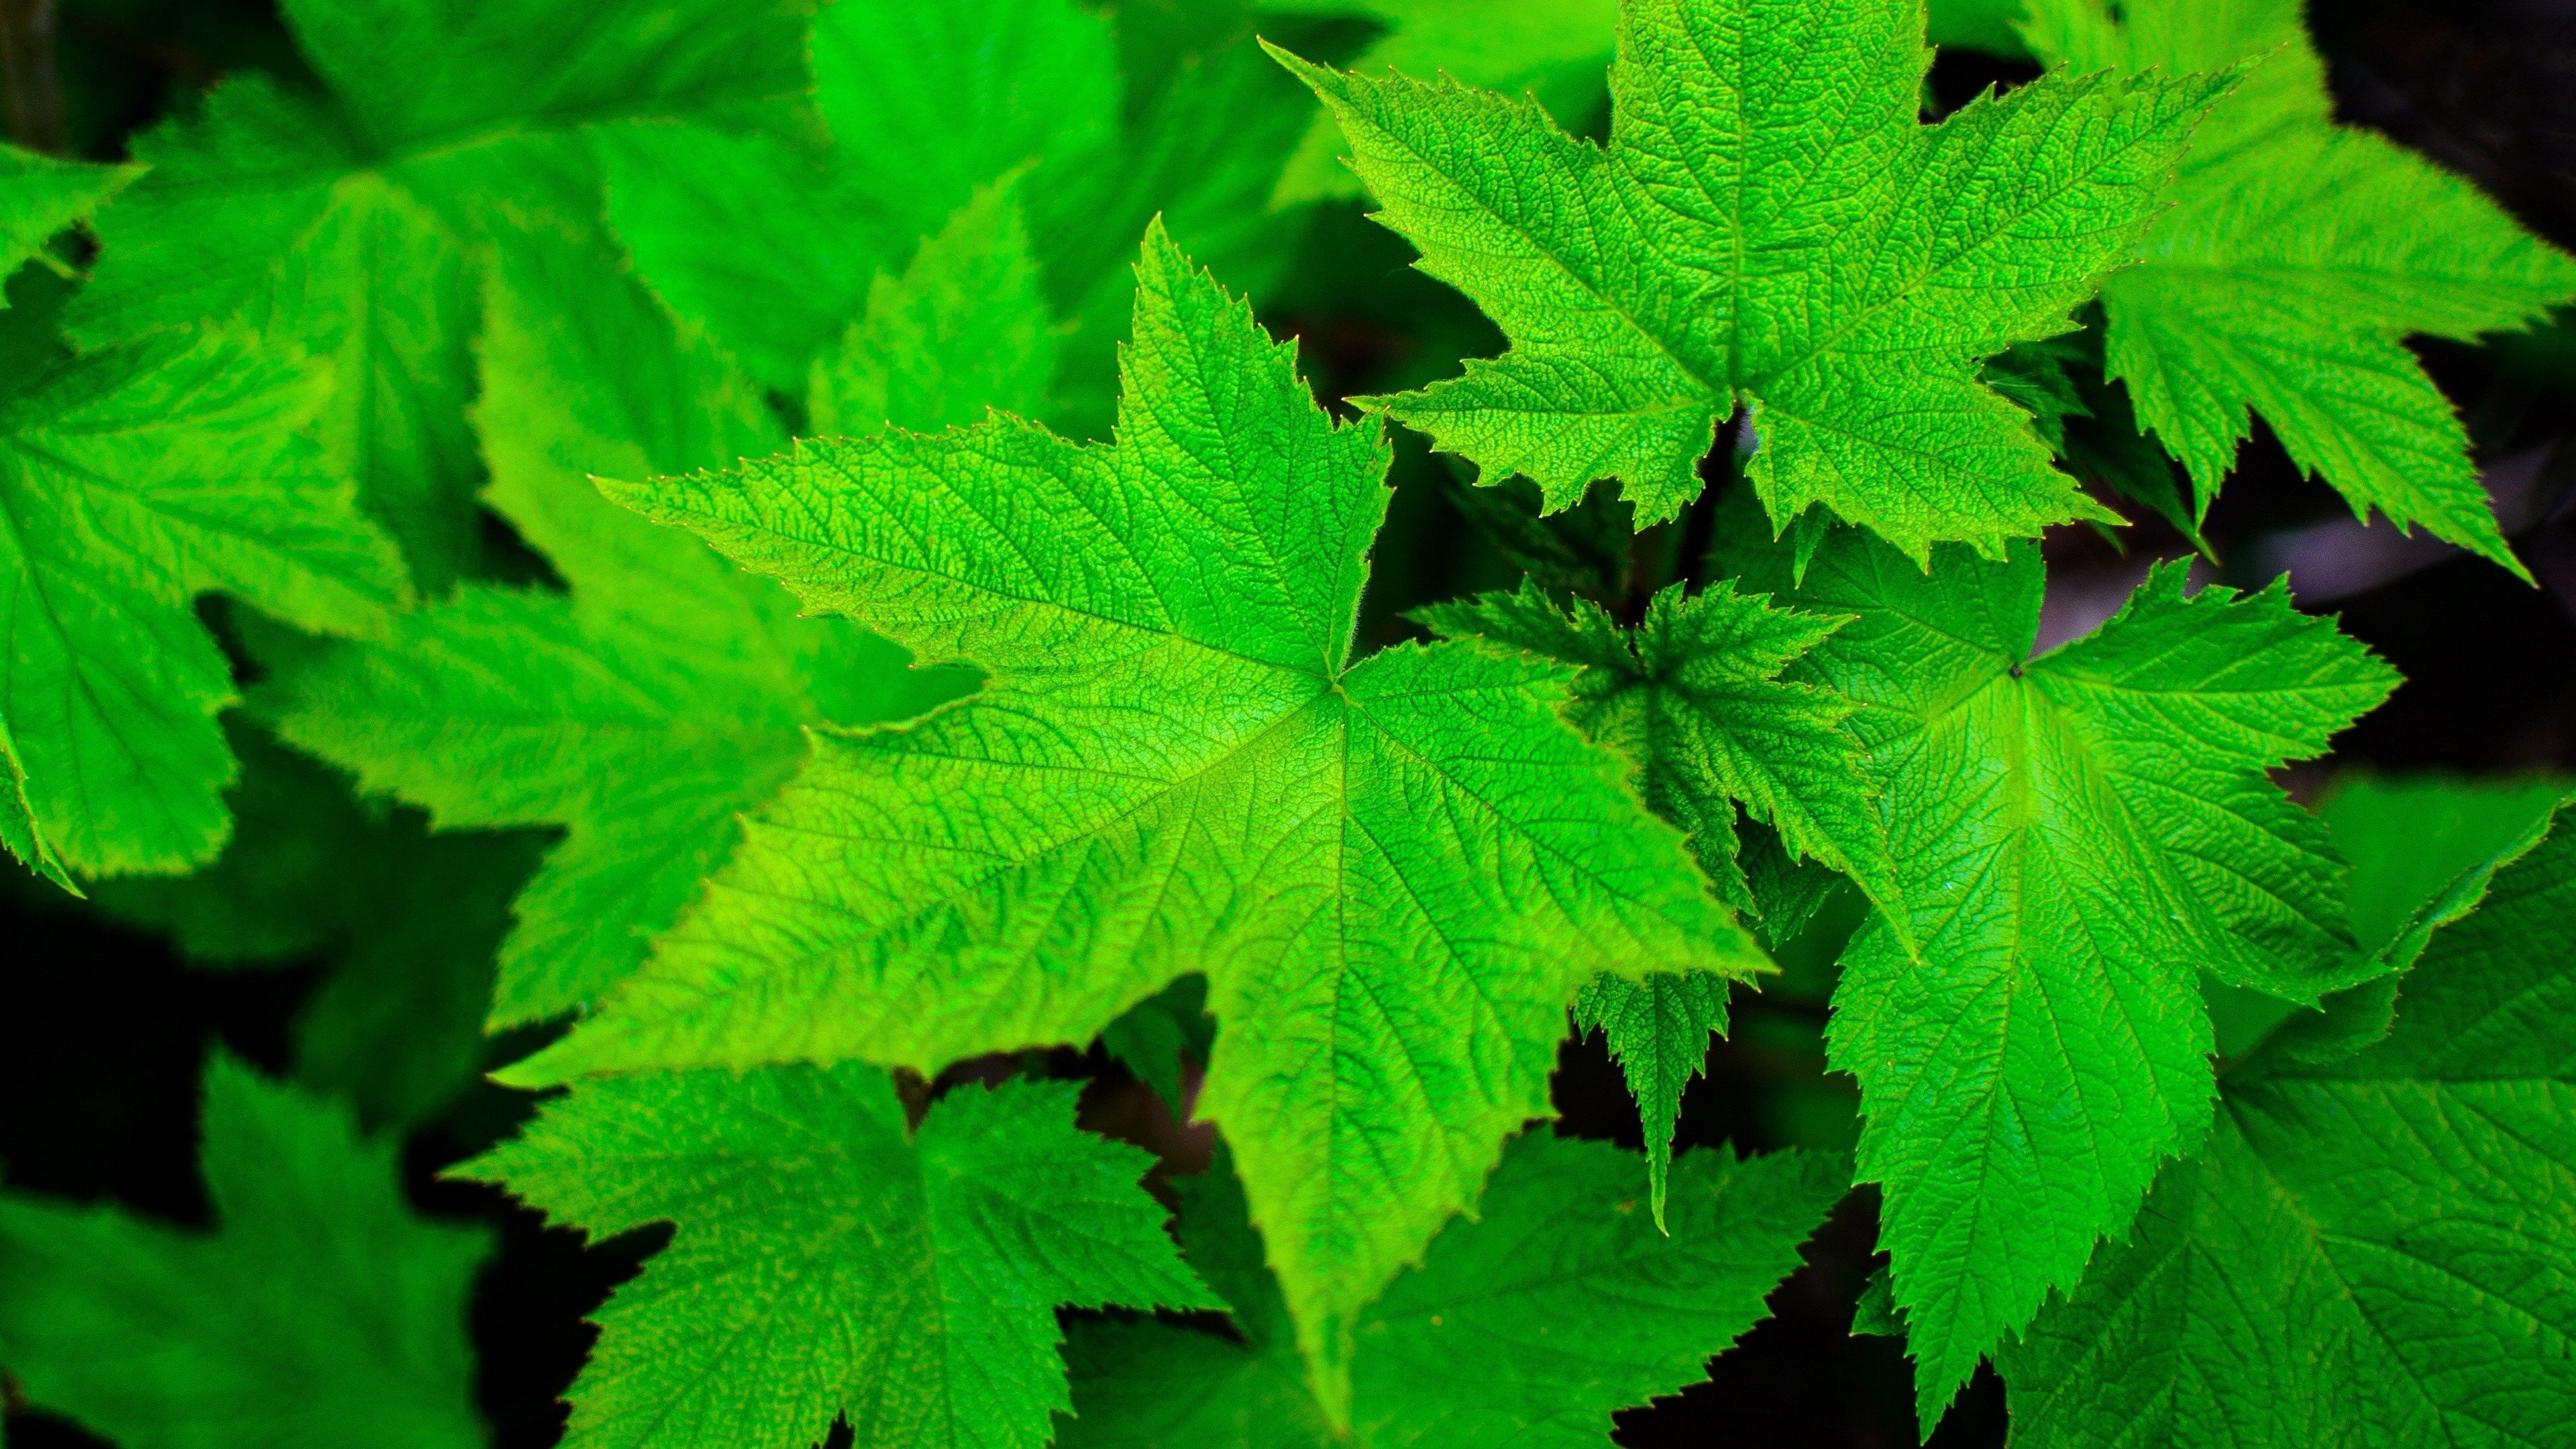 HD Wallpapers 1080p Green Nature